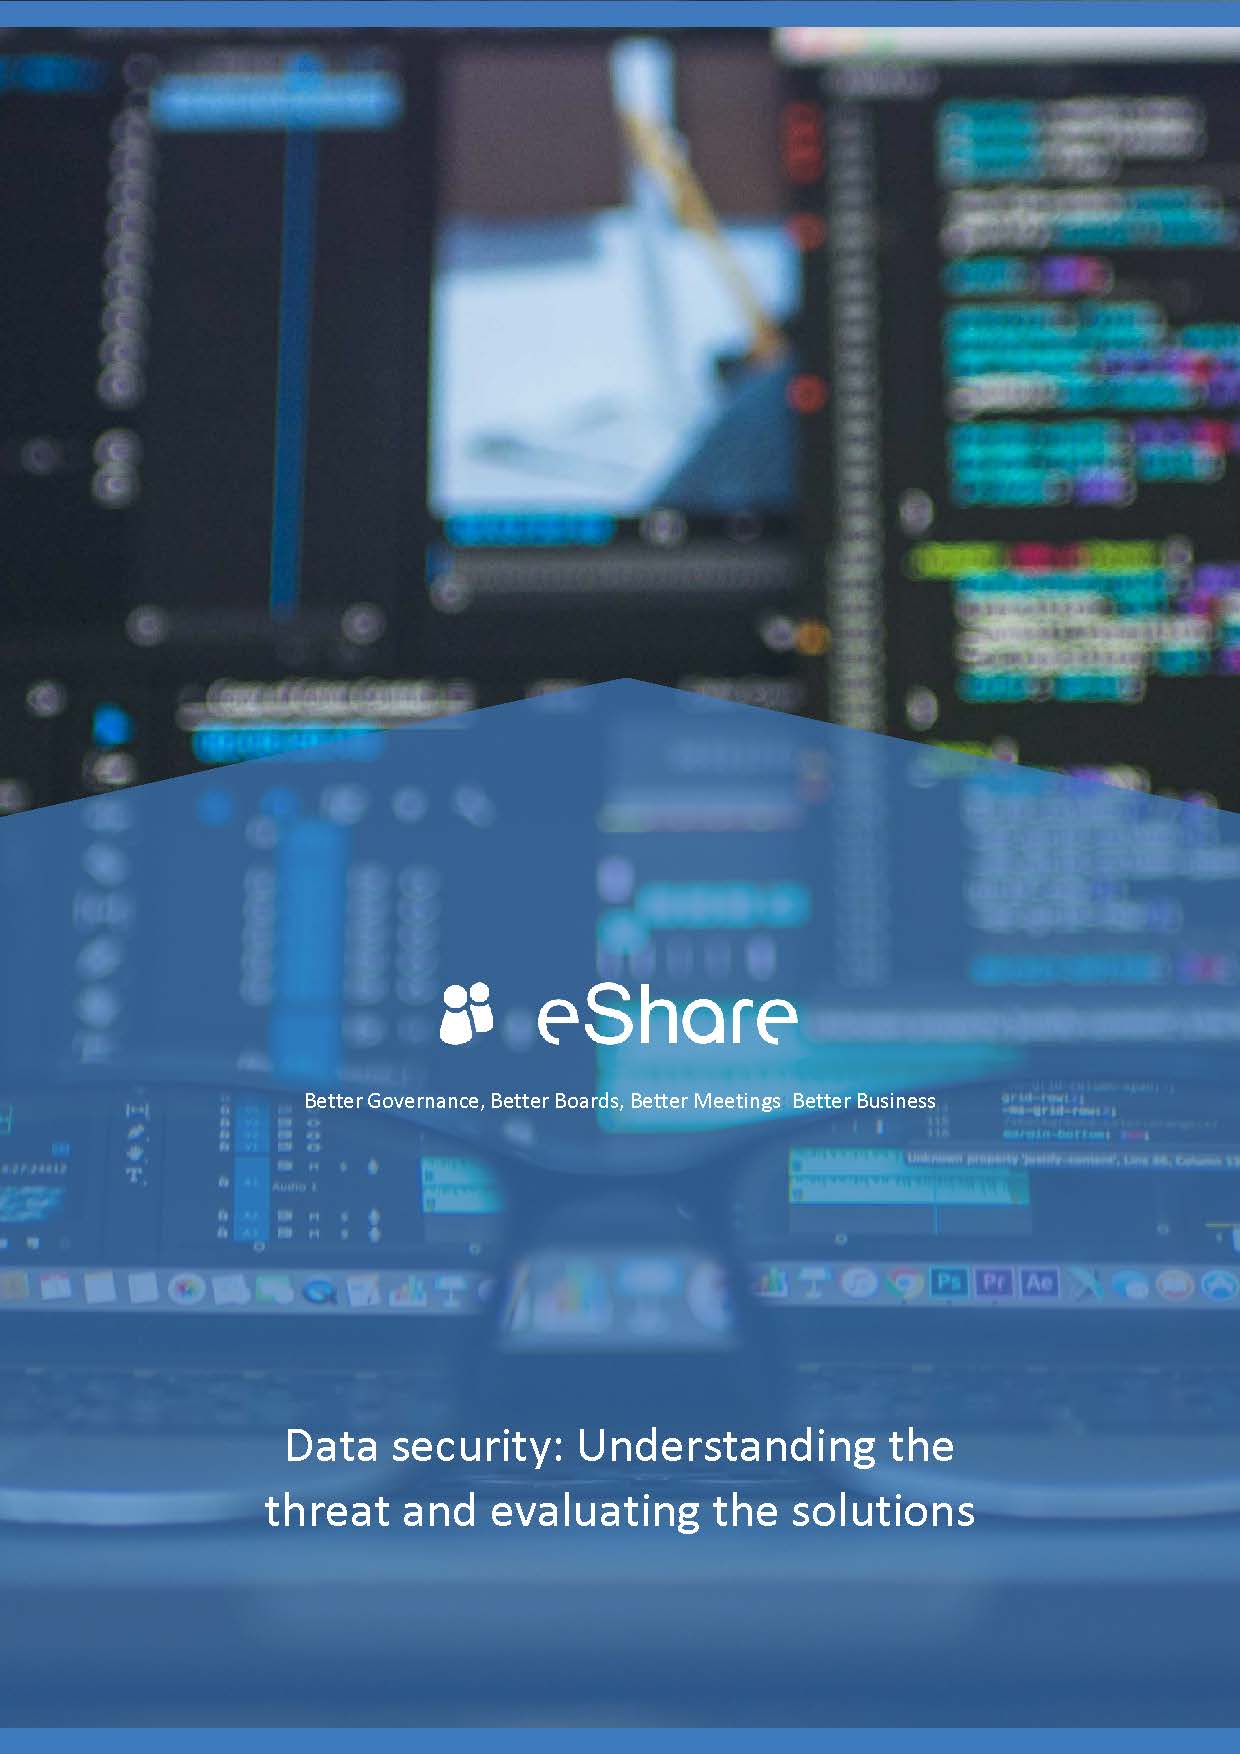 Data security: Understanding the threat and evaluating the solutions whitepaper